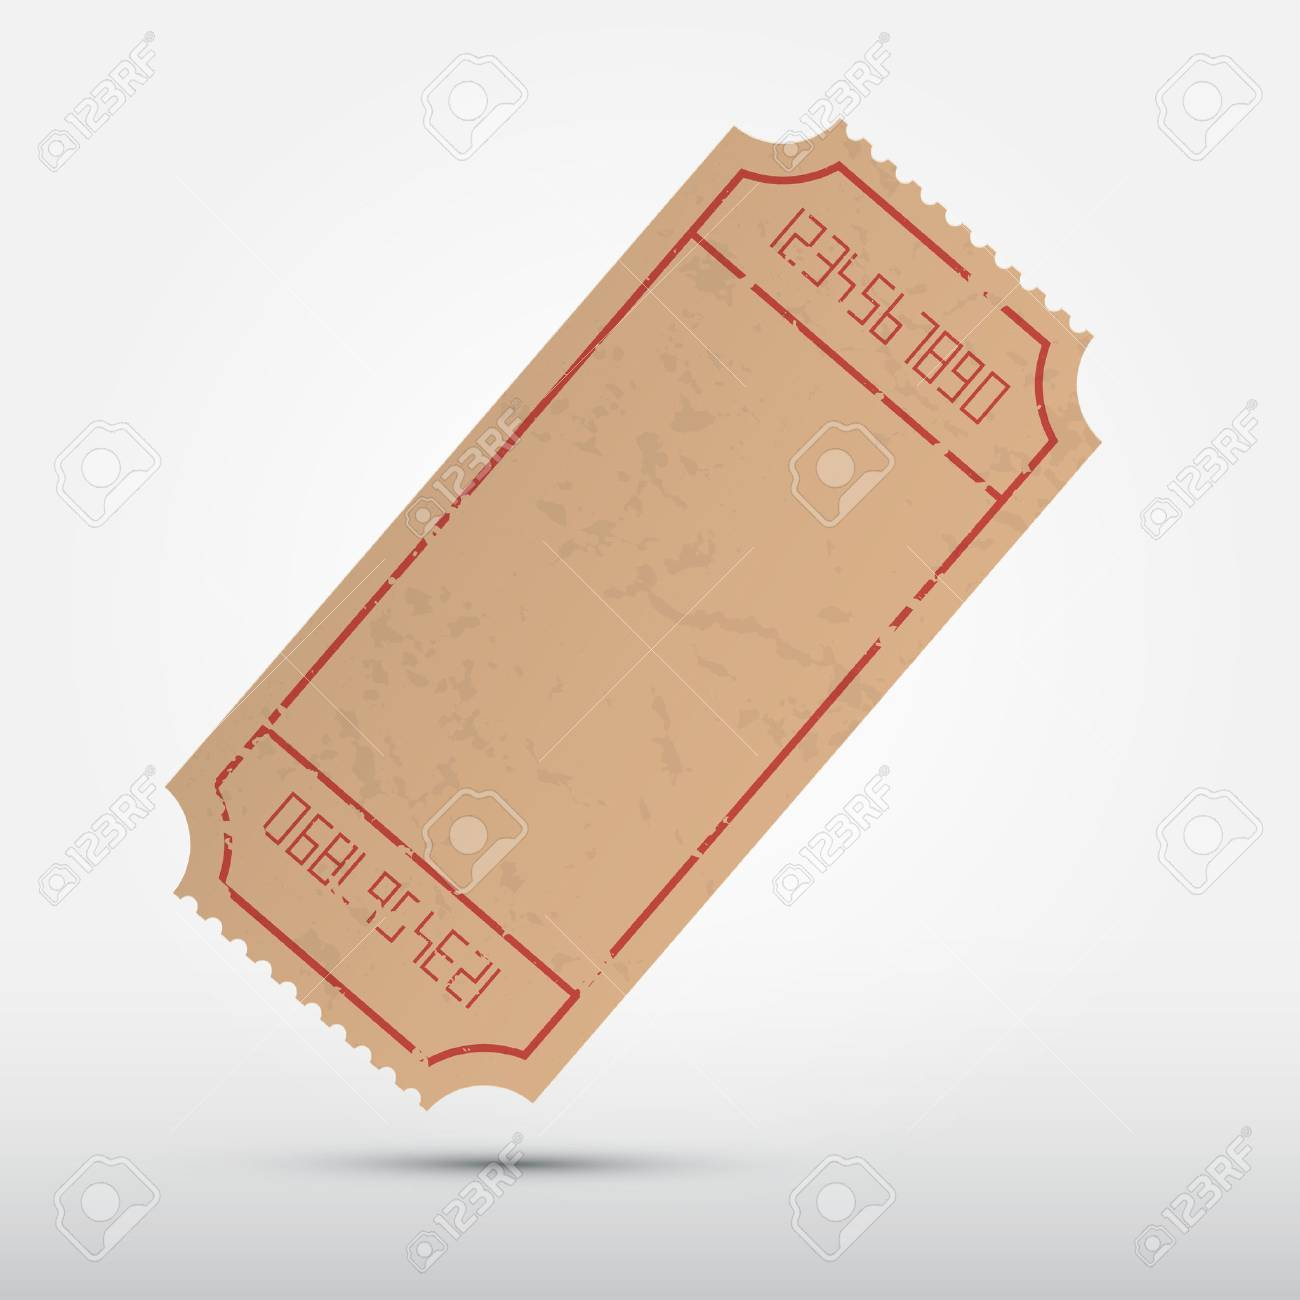 Vector Empty Ticket Illustration Isolated on Grey Background - 27165079